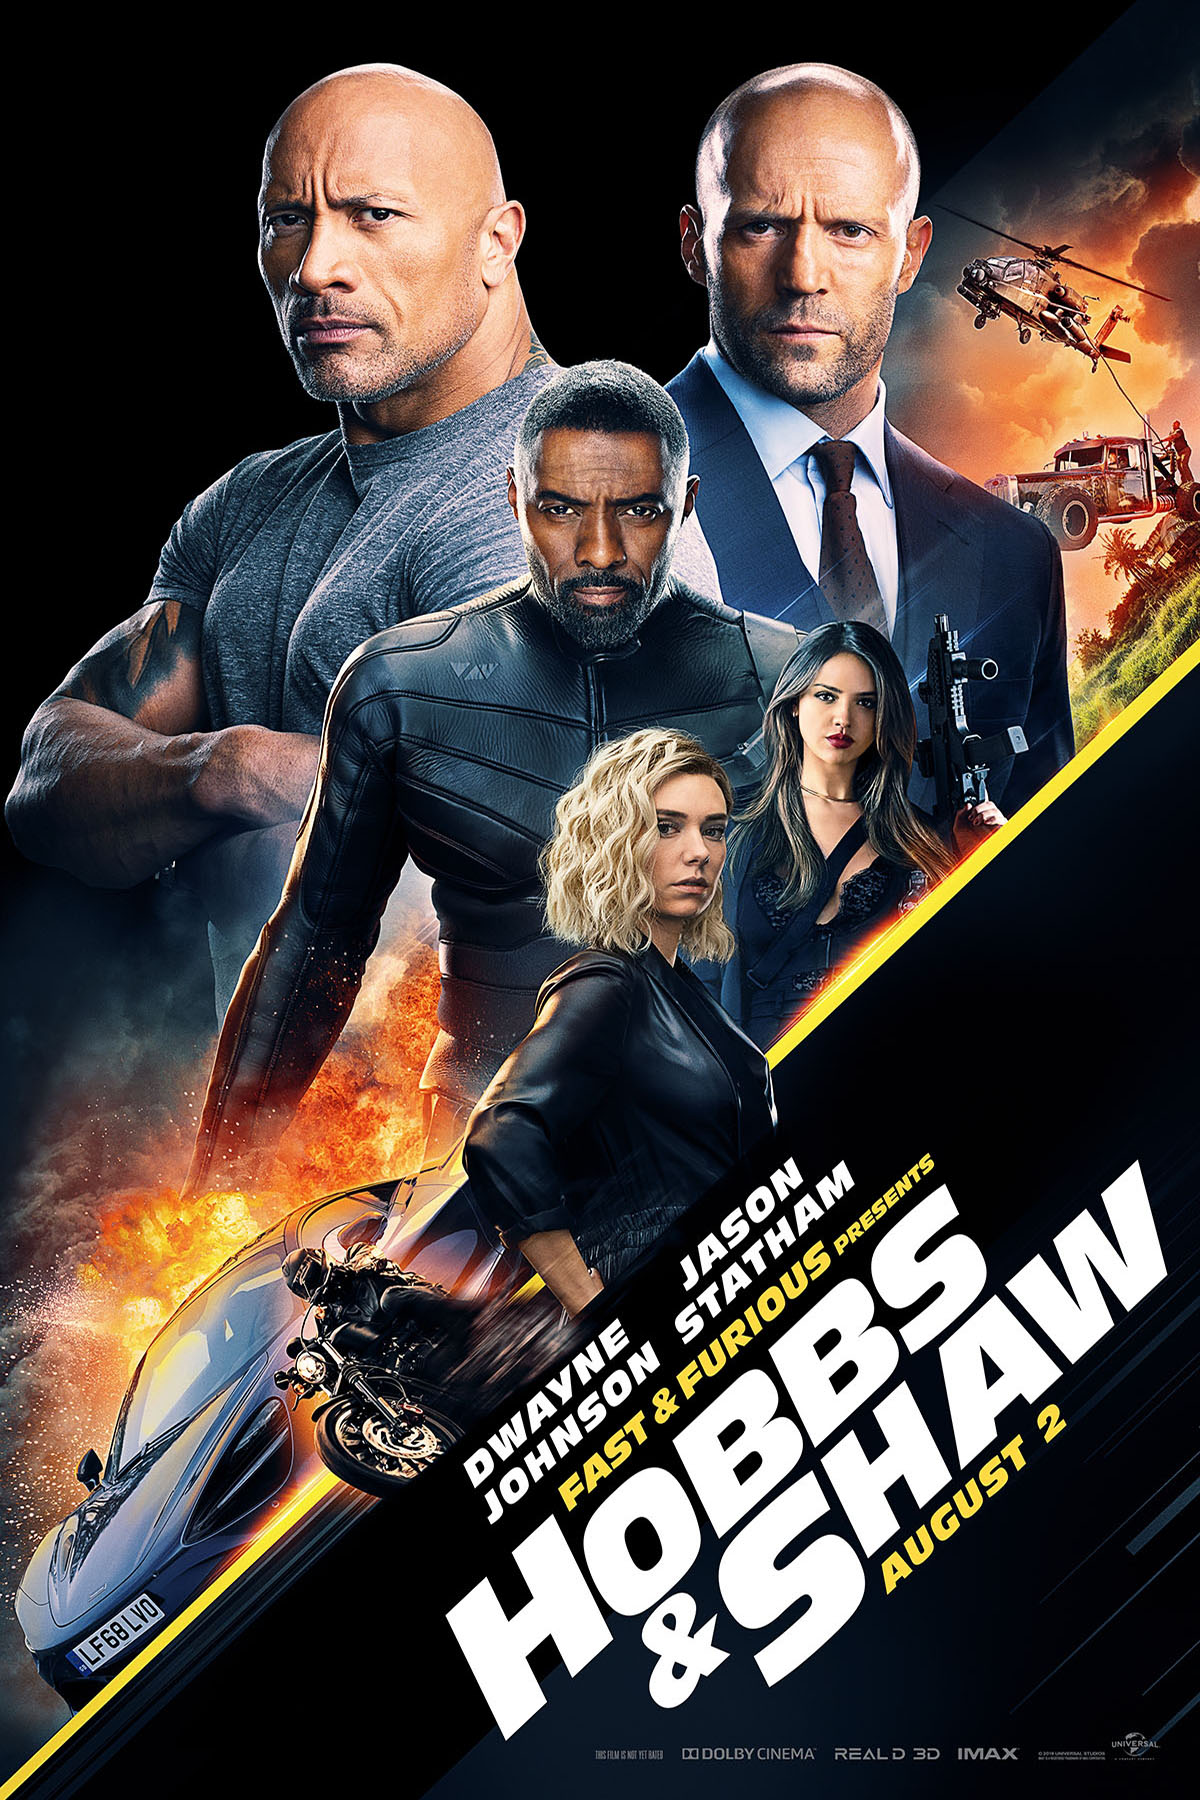 Hobbs and Shaw Fast and Furious Presents Poster